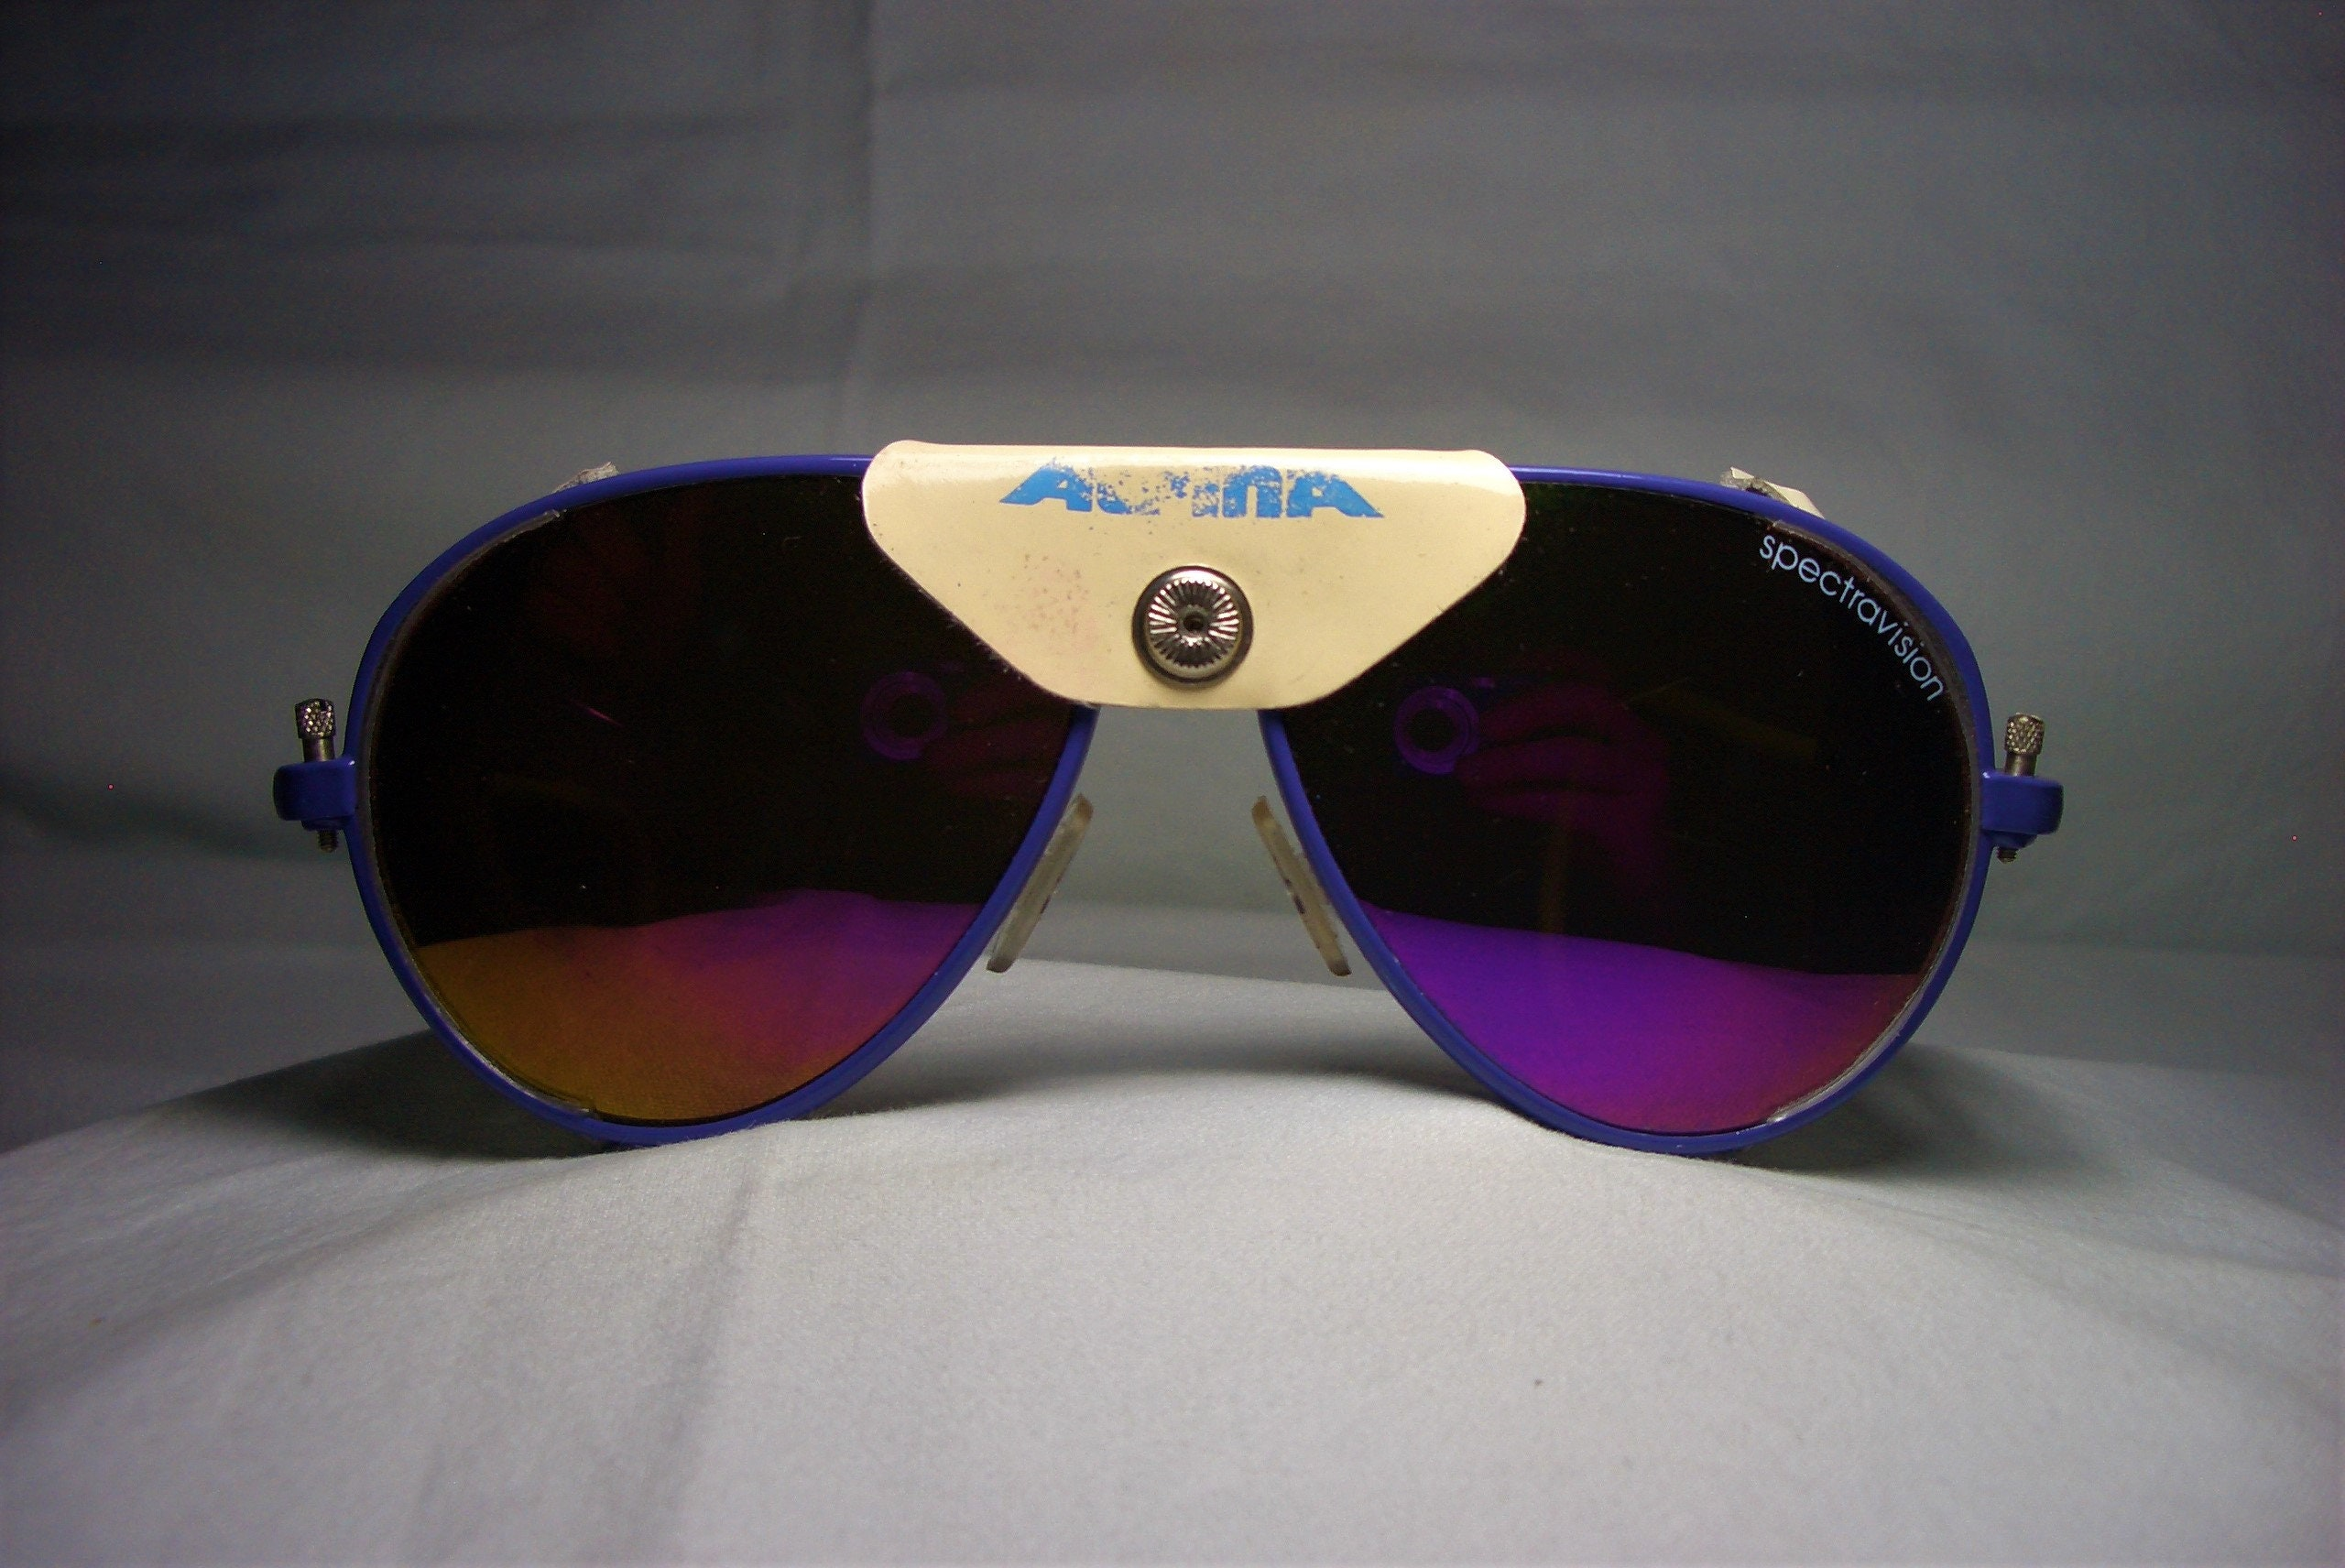 Alpina, Aviator, sunglasses, Glacier, Mountaineer, sports, round, oval, men's, women's